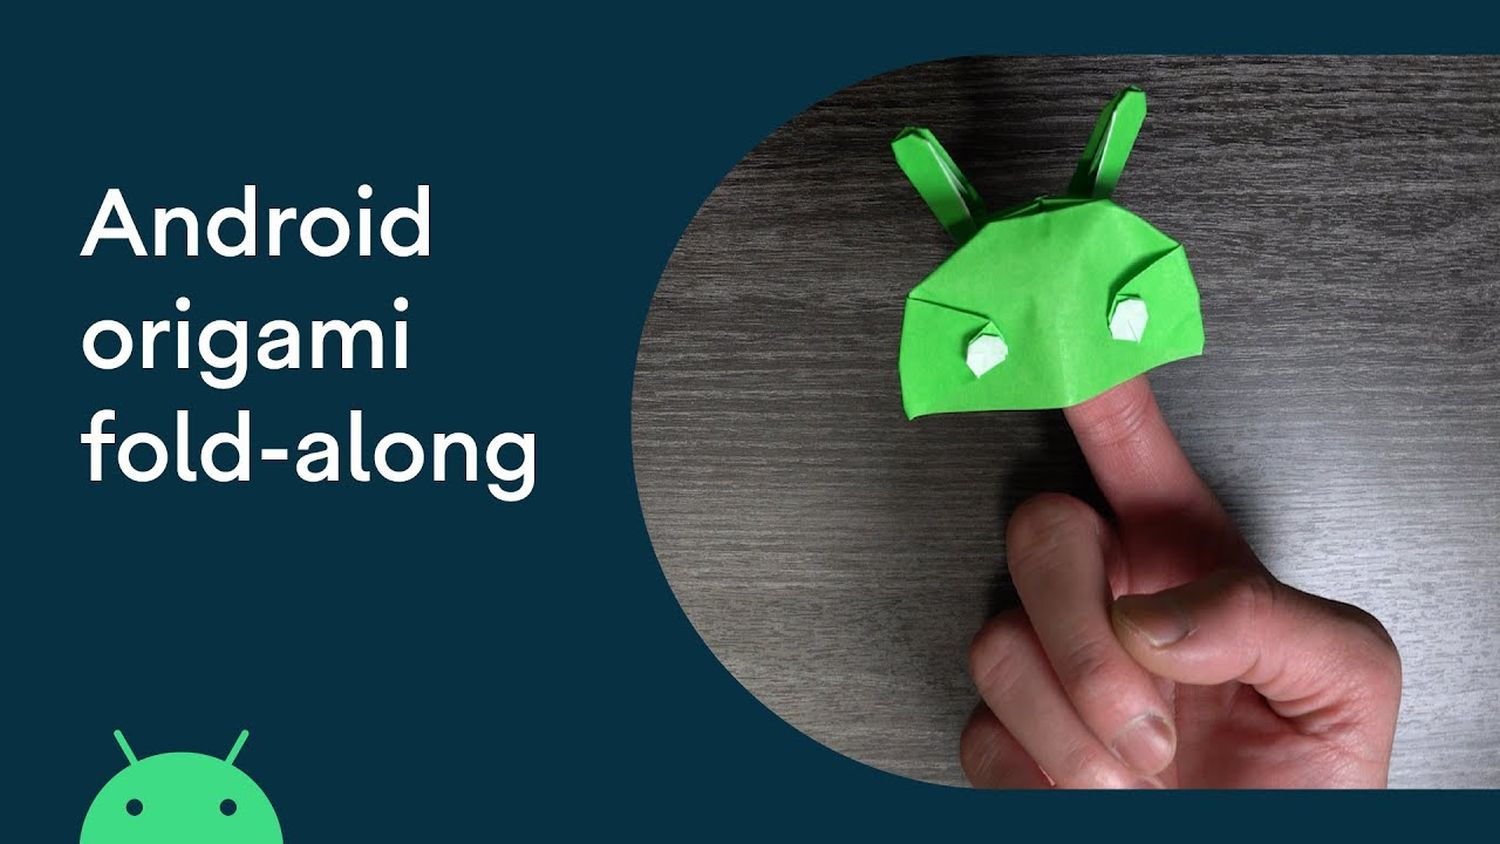 android origami